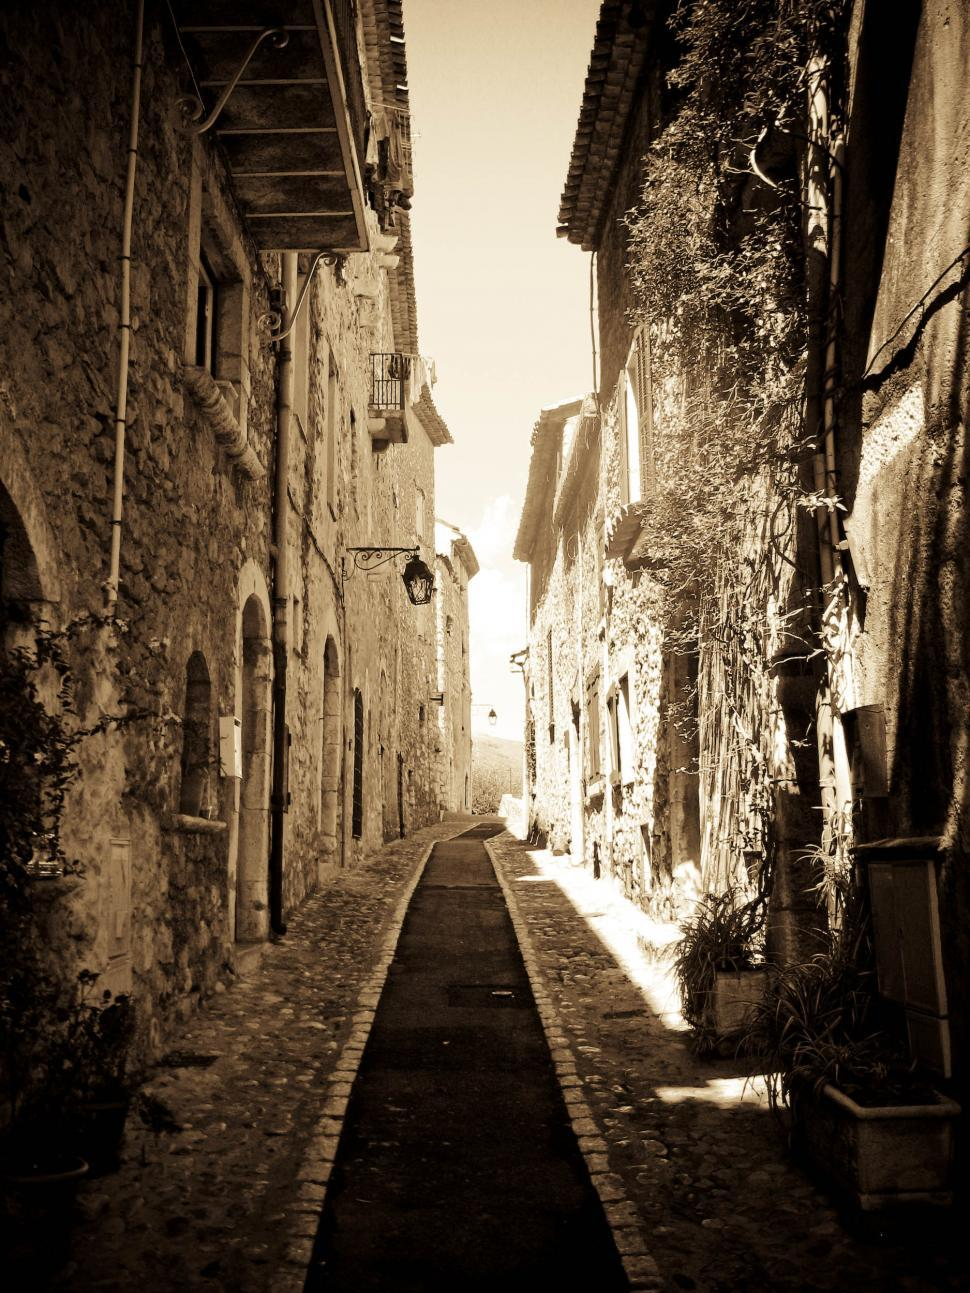 Download Free Stock Photo of narrow street